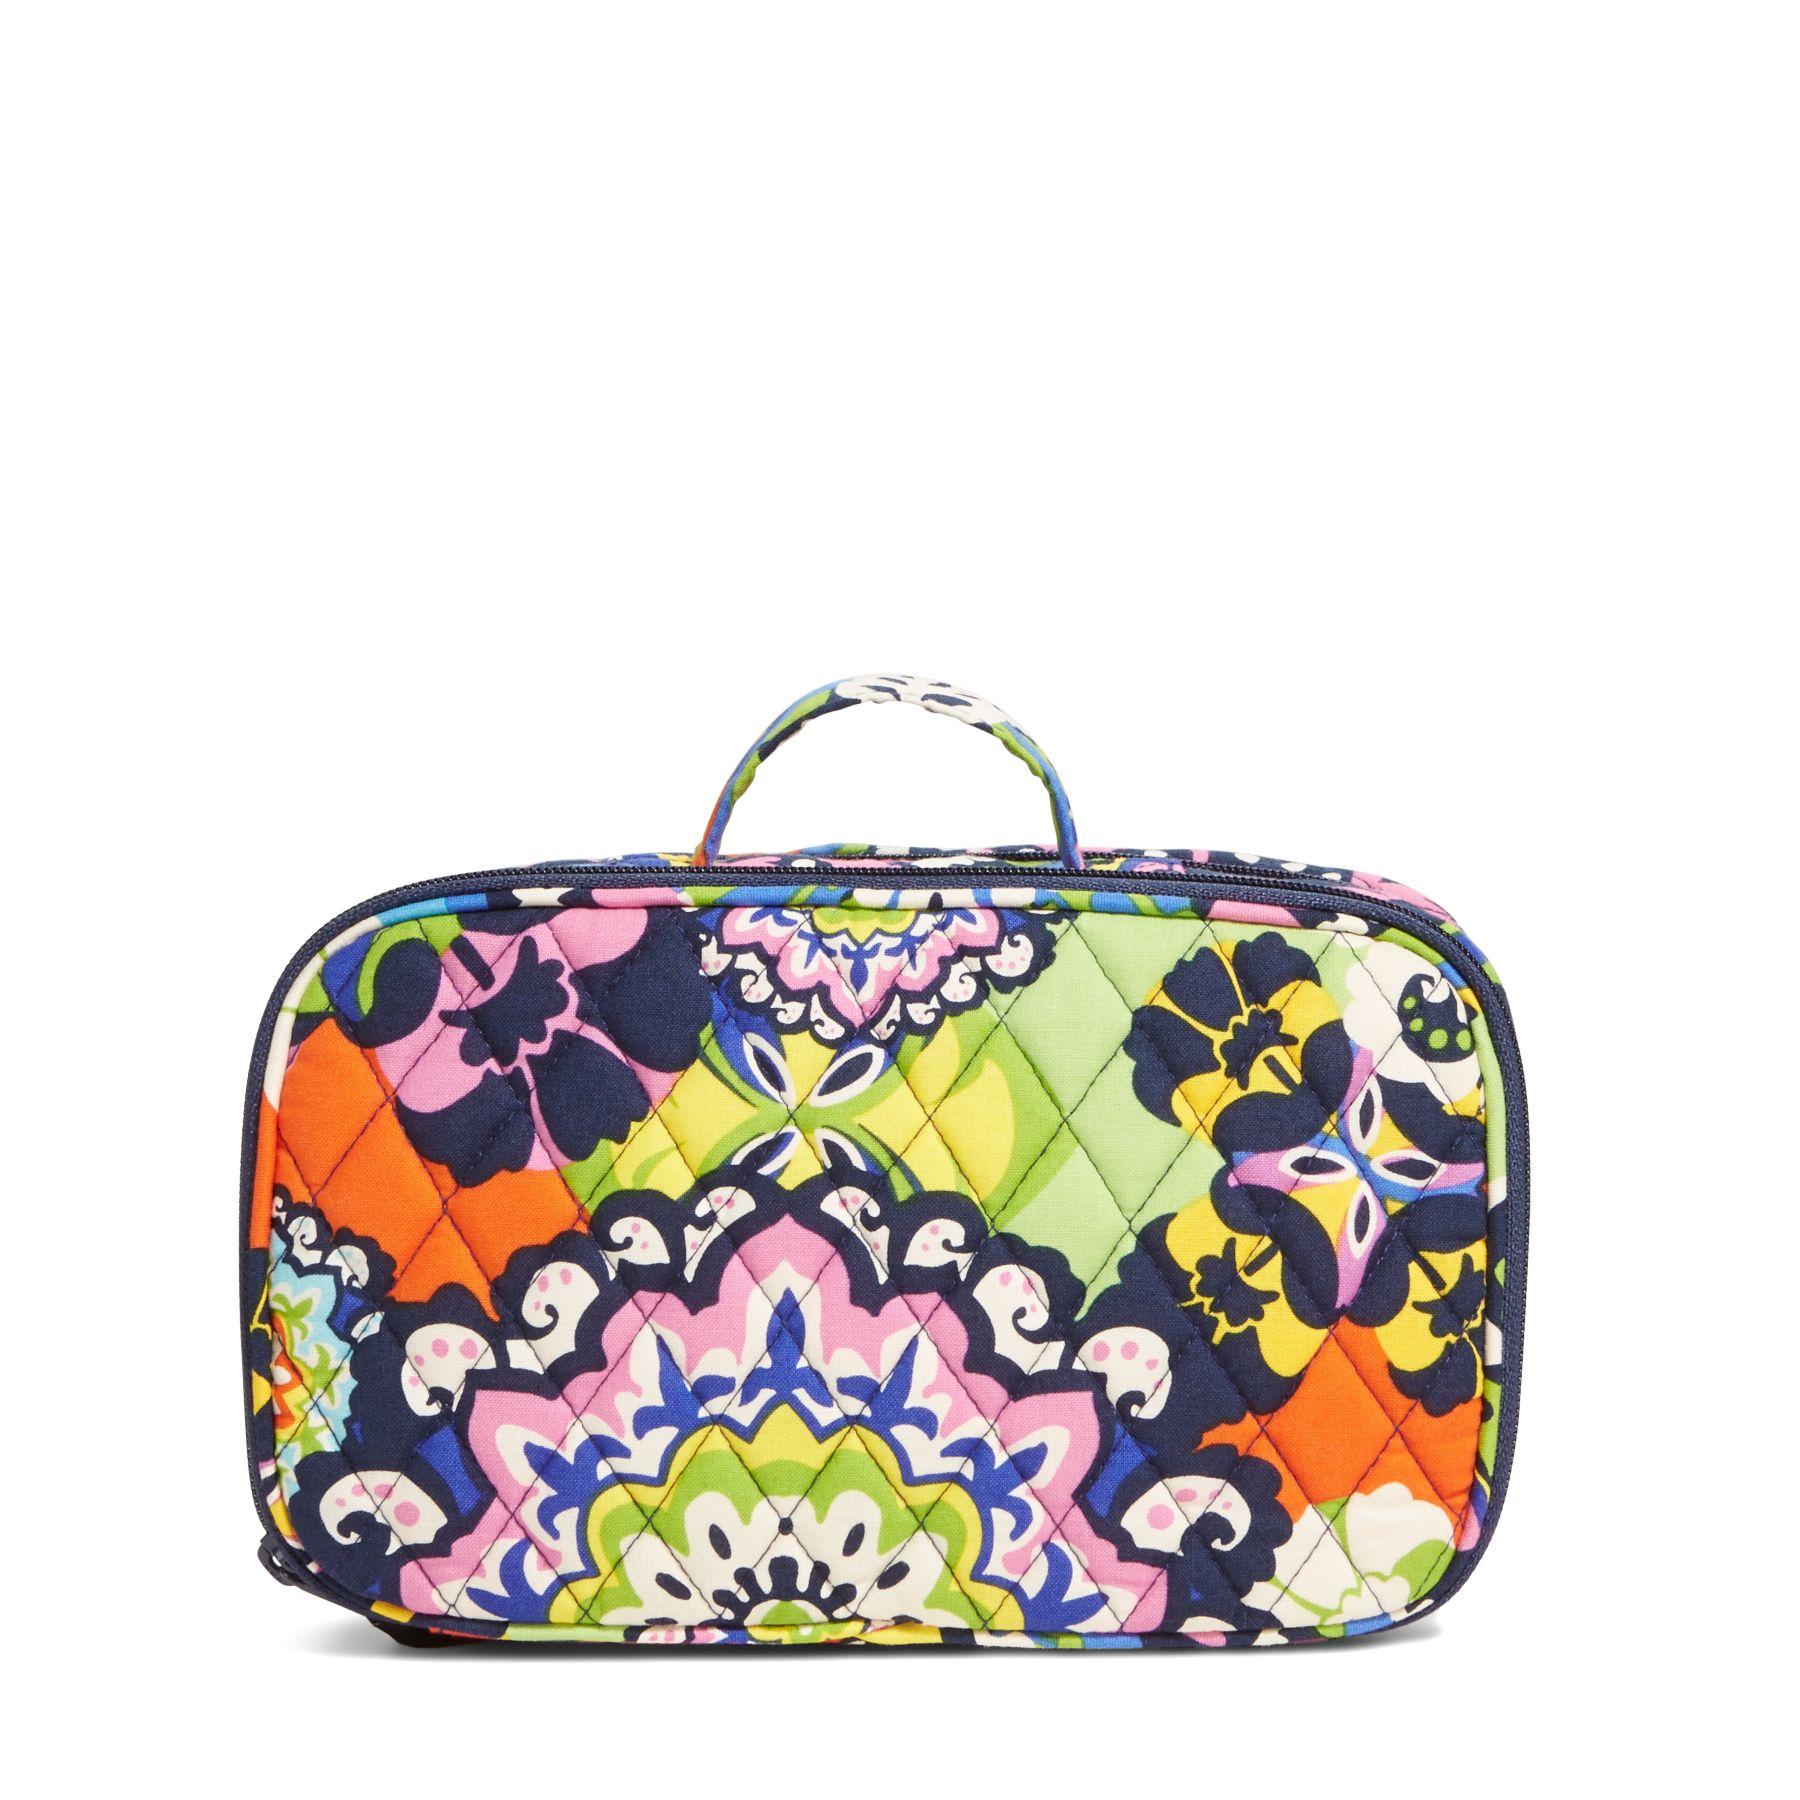 Vera Bradley Blush and Brush Makeup Case in Rio